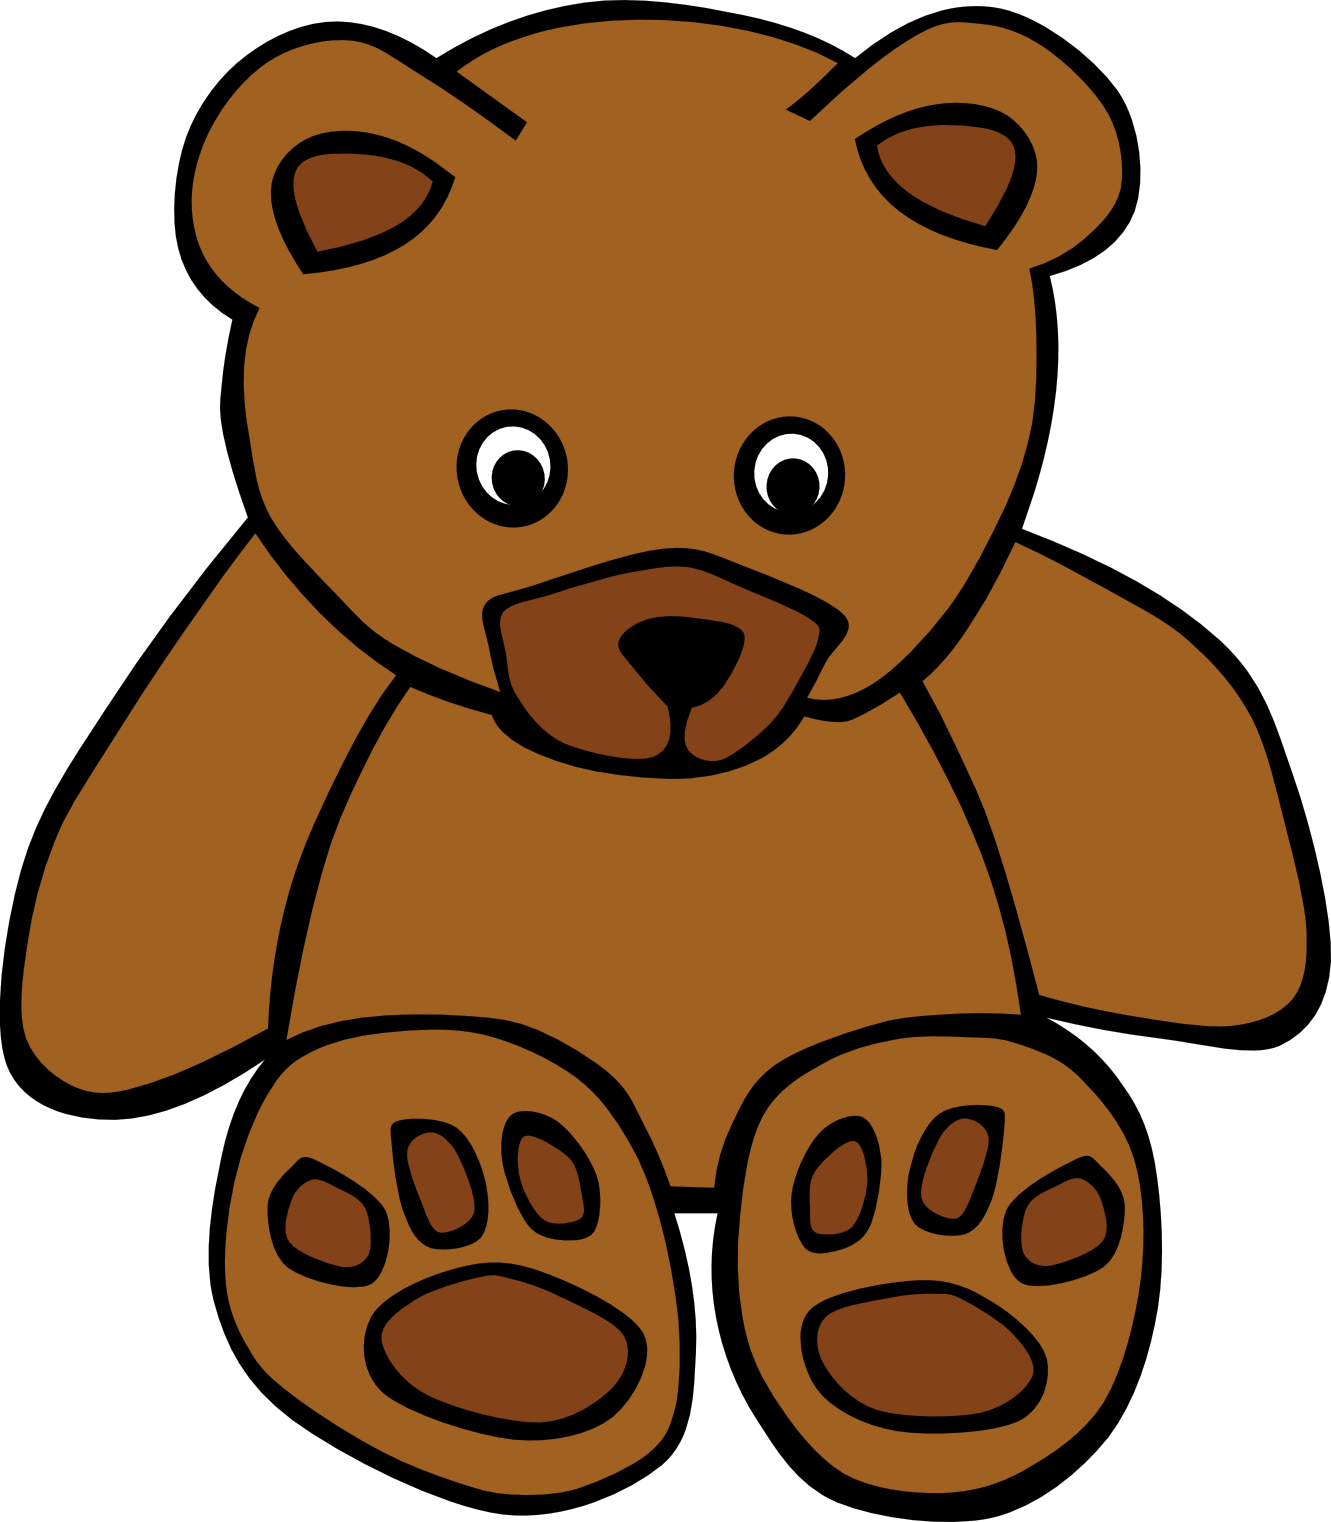 Baseball bears clipart png transparent download Teddy Colouring Pages at GetDrawings.com | Free for personal use ... png transparent download